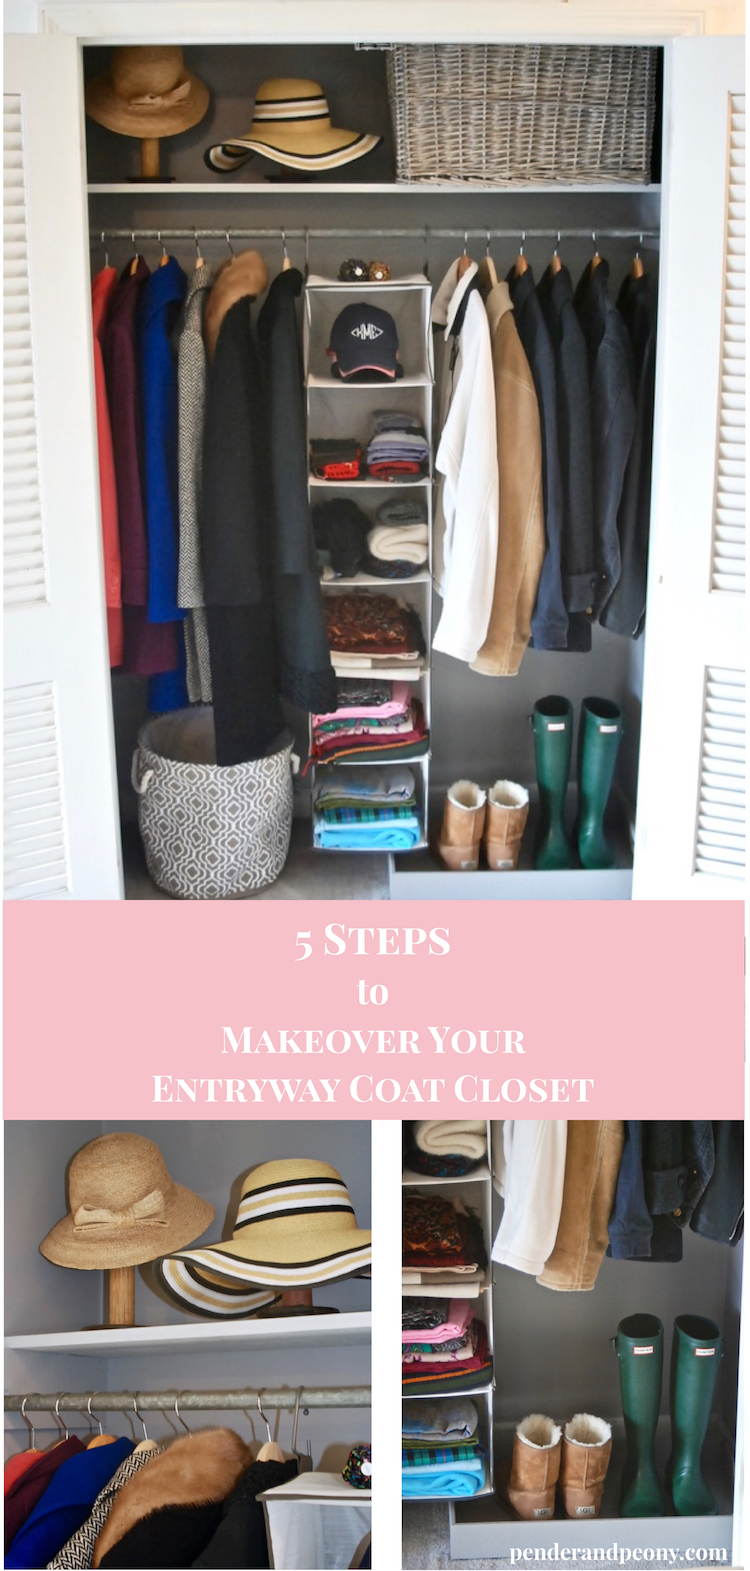 Use these 5 steps to makeover your entryway closet and create organization. Check out the before and after photos of my closet makeover.